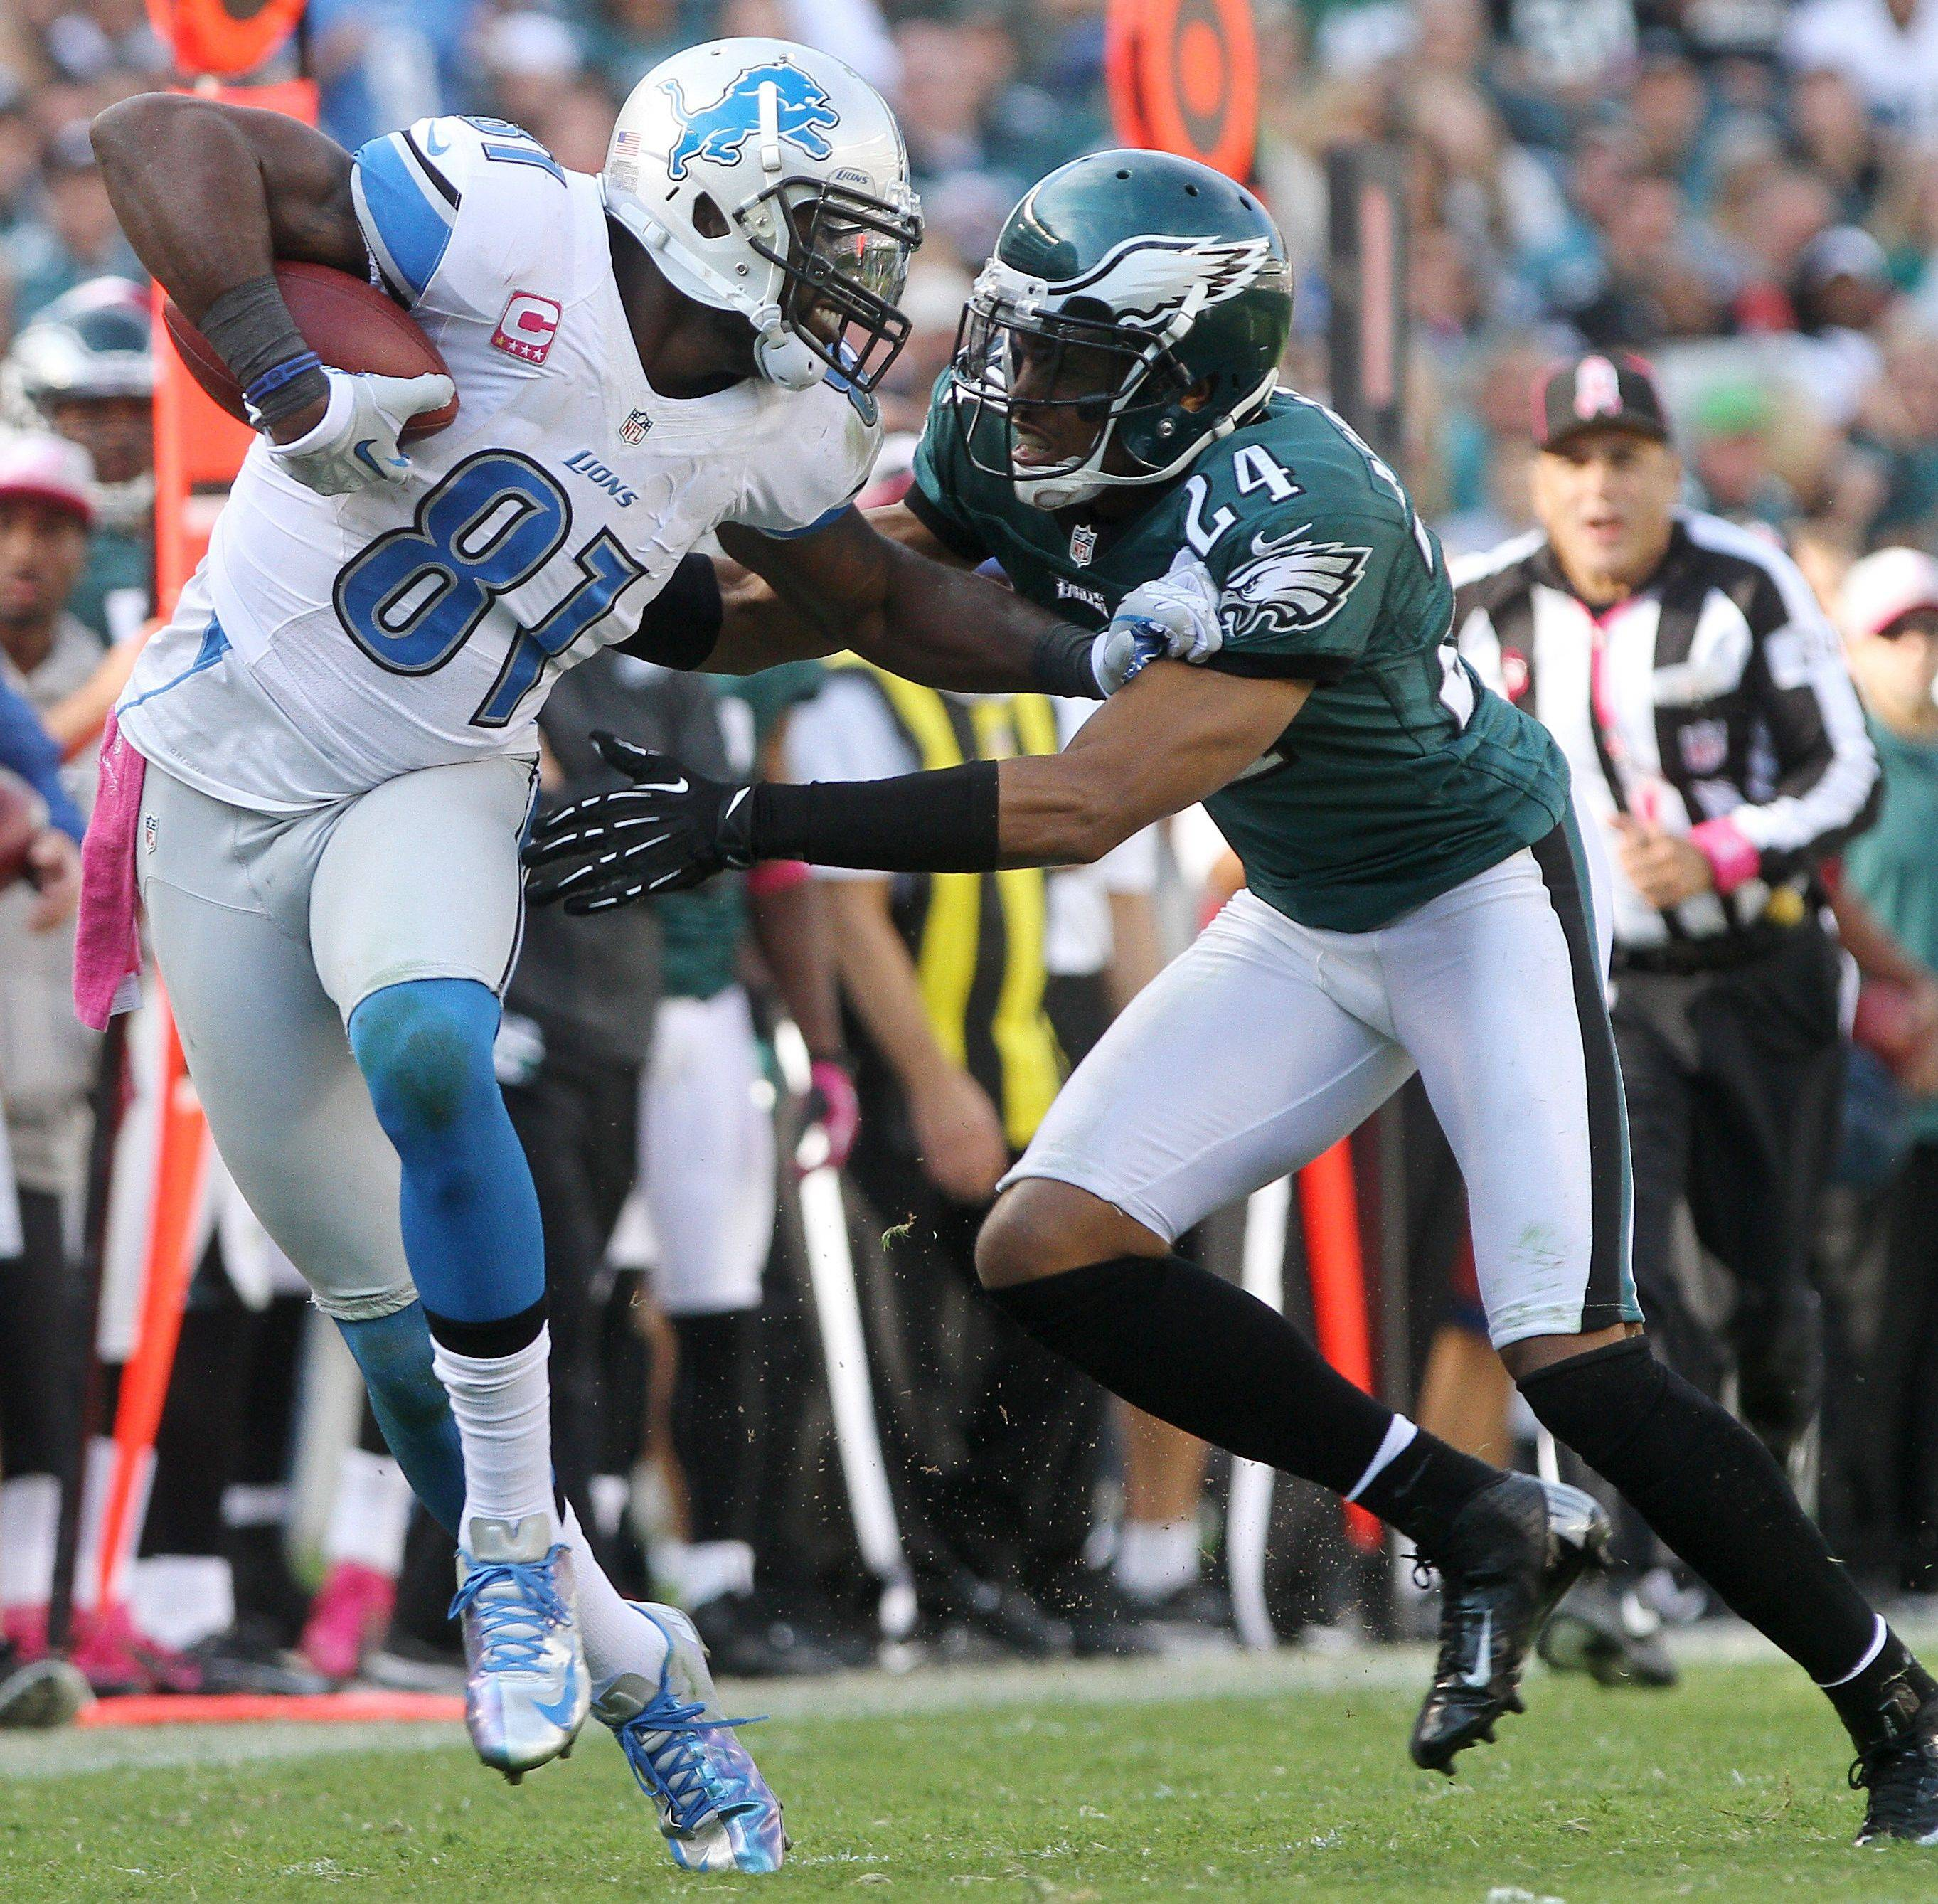 Lions receiver Calvin Johnson tries to separate from Eagles cornerback Nnamdi Asomugha last week in Philadelphia. Johnson has 35 catches for 558 yards and 1 TD on the season.